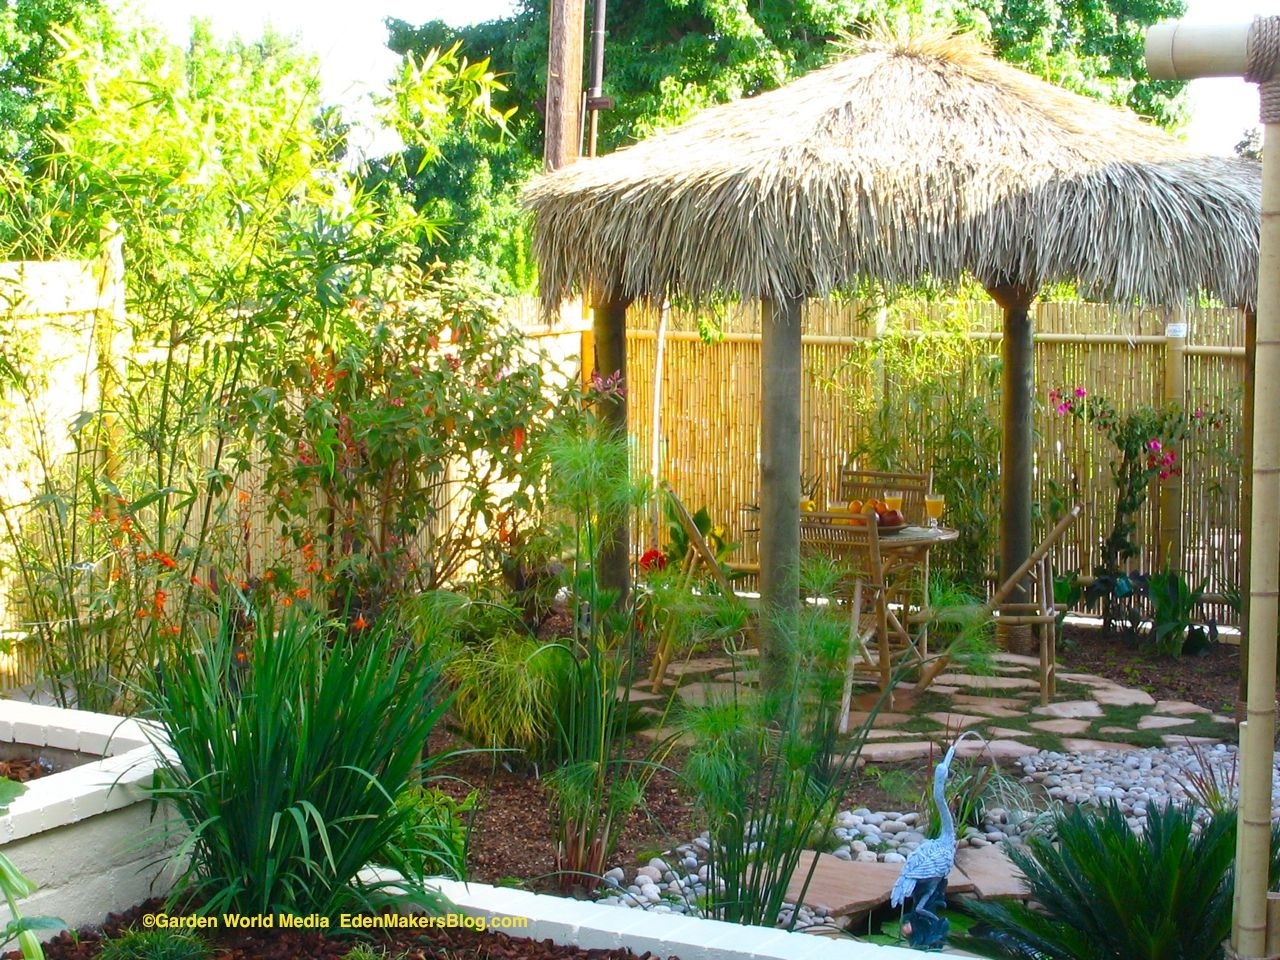 Tropical Backyard Landscaping Ideas - Home Design Elements on Tropical Small Backyard Ideas id=80269